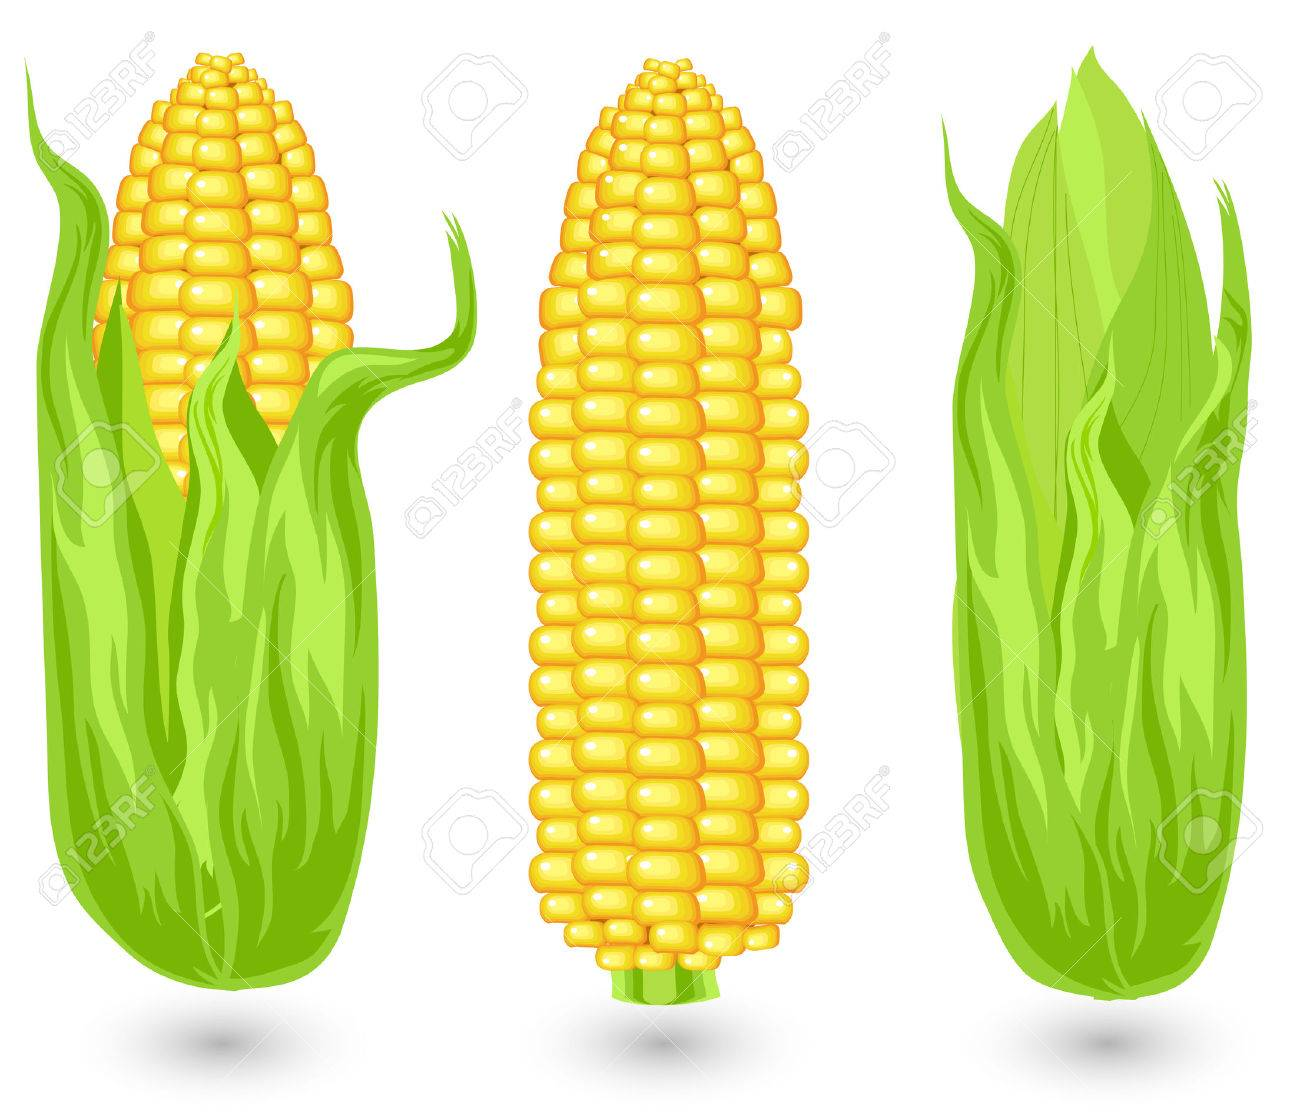 hight resolution of ears of ripe corn agricultural reaped crop illustration stock vector 4755731